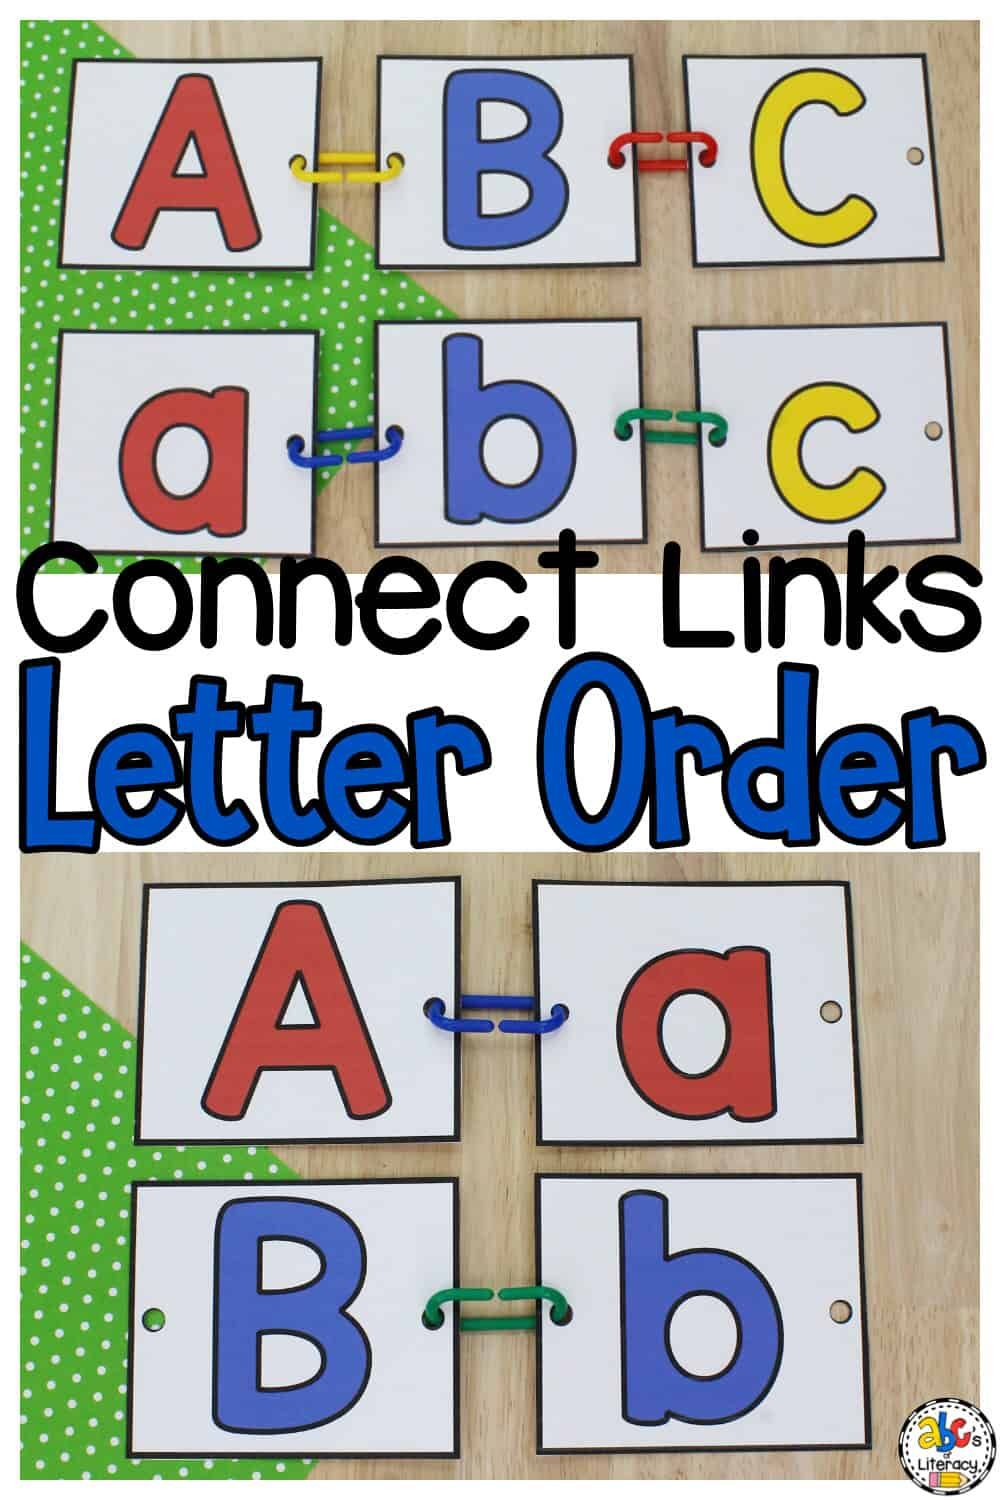 Connect Links Letter Order Activity For Preschool Kindergarten Letter Activities Preschool Letter Recognition Activities Letter Recognition Preschool [ 1500 x 1000 Pixel ]